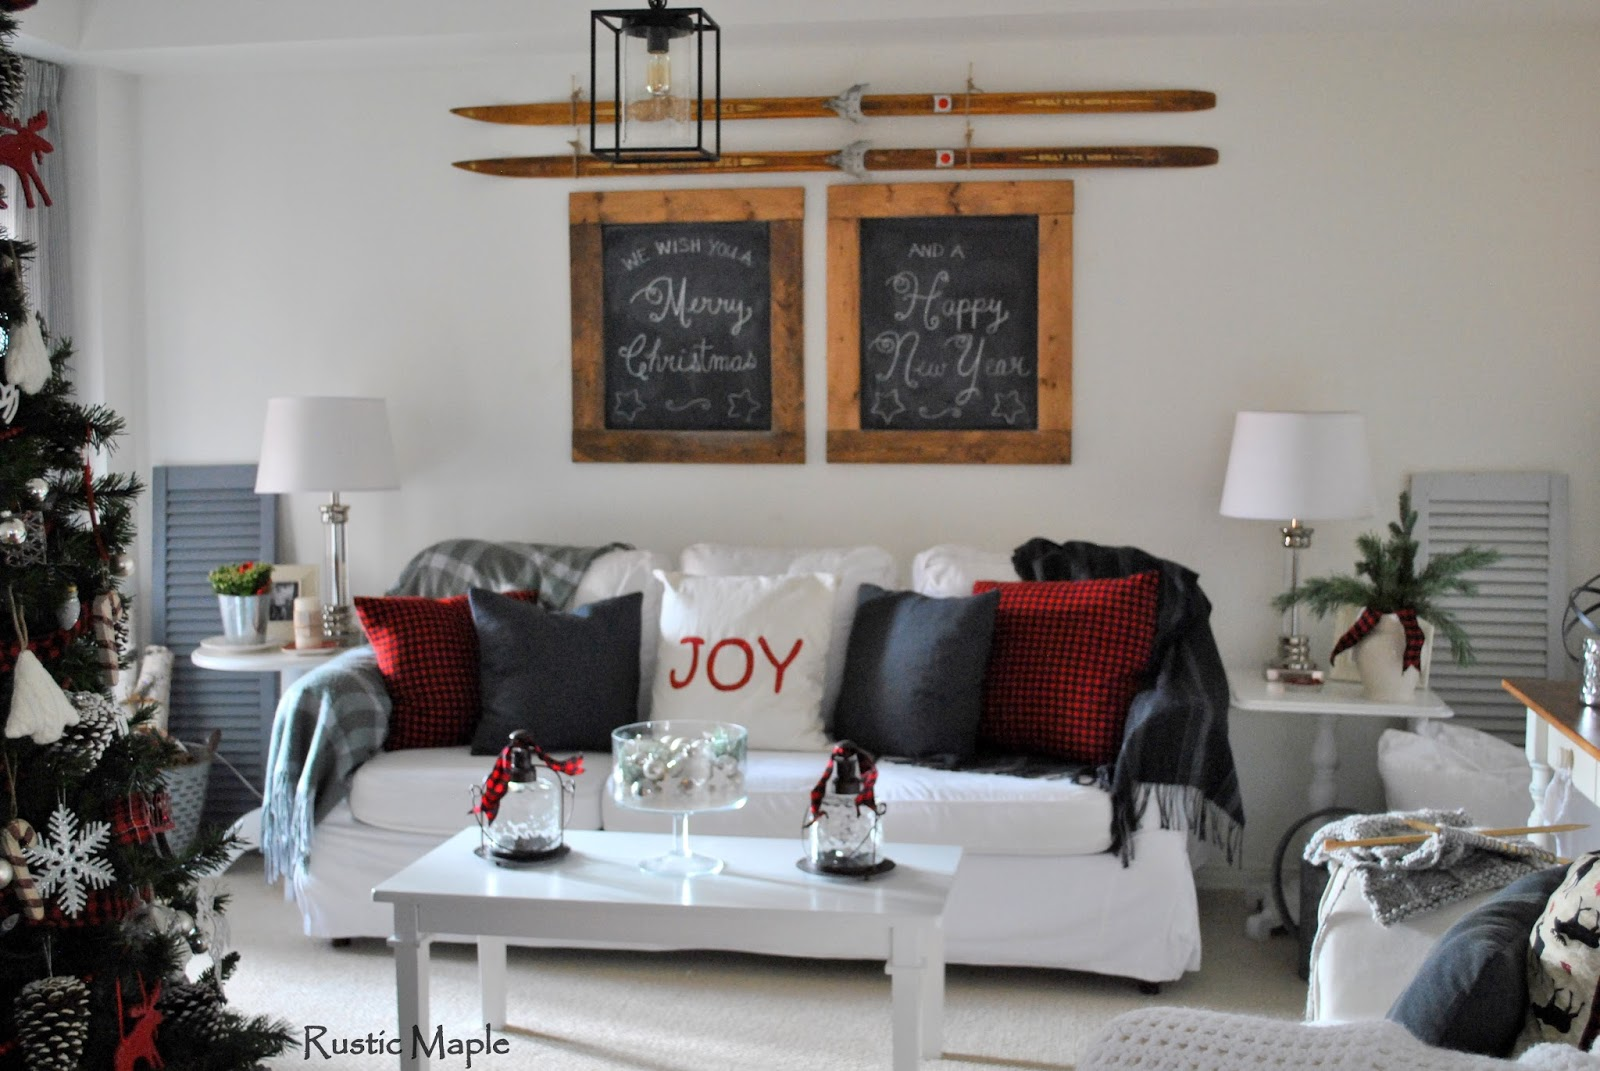 Rustic Maple: Our Rustic Christmas Living Room 2015